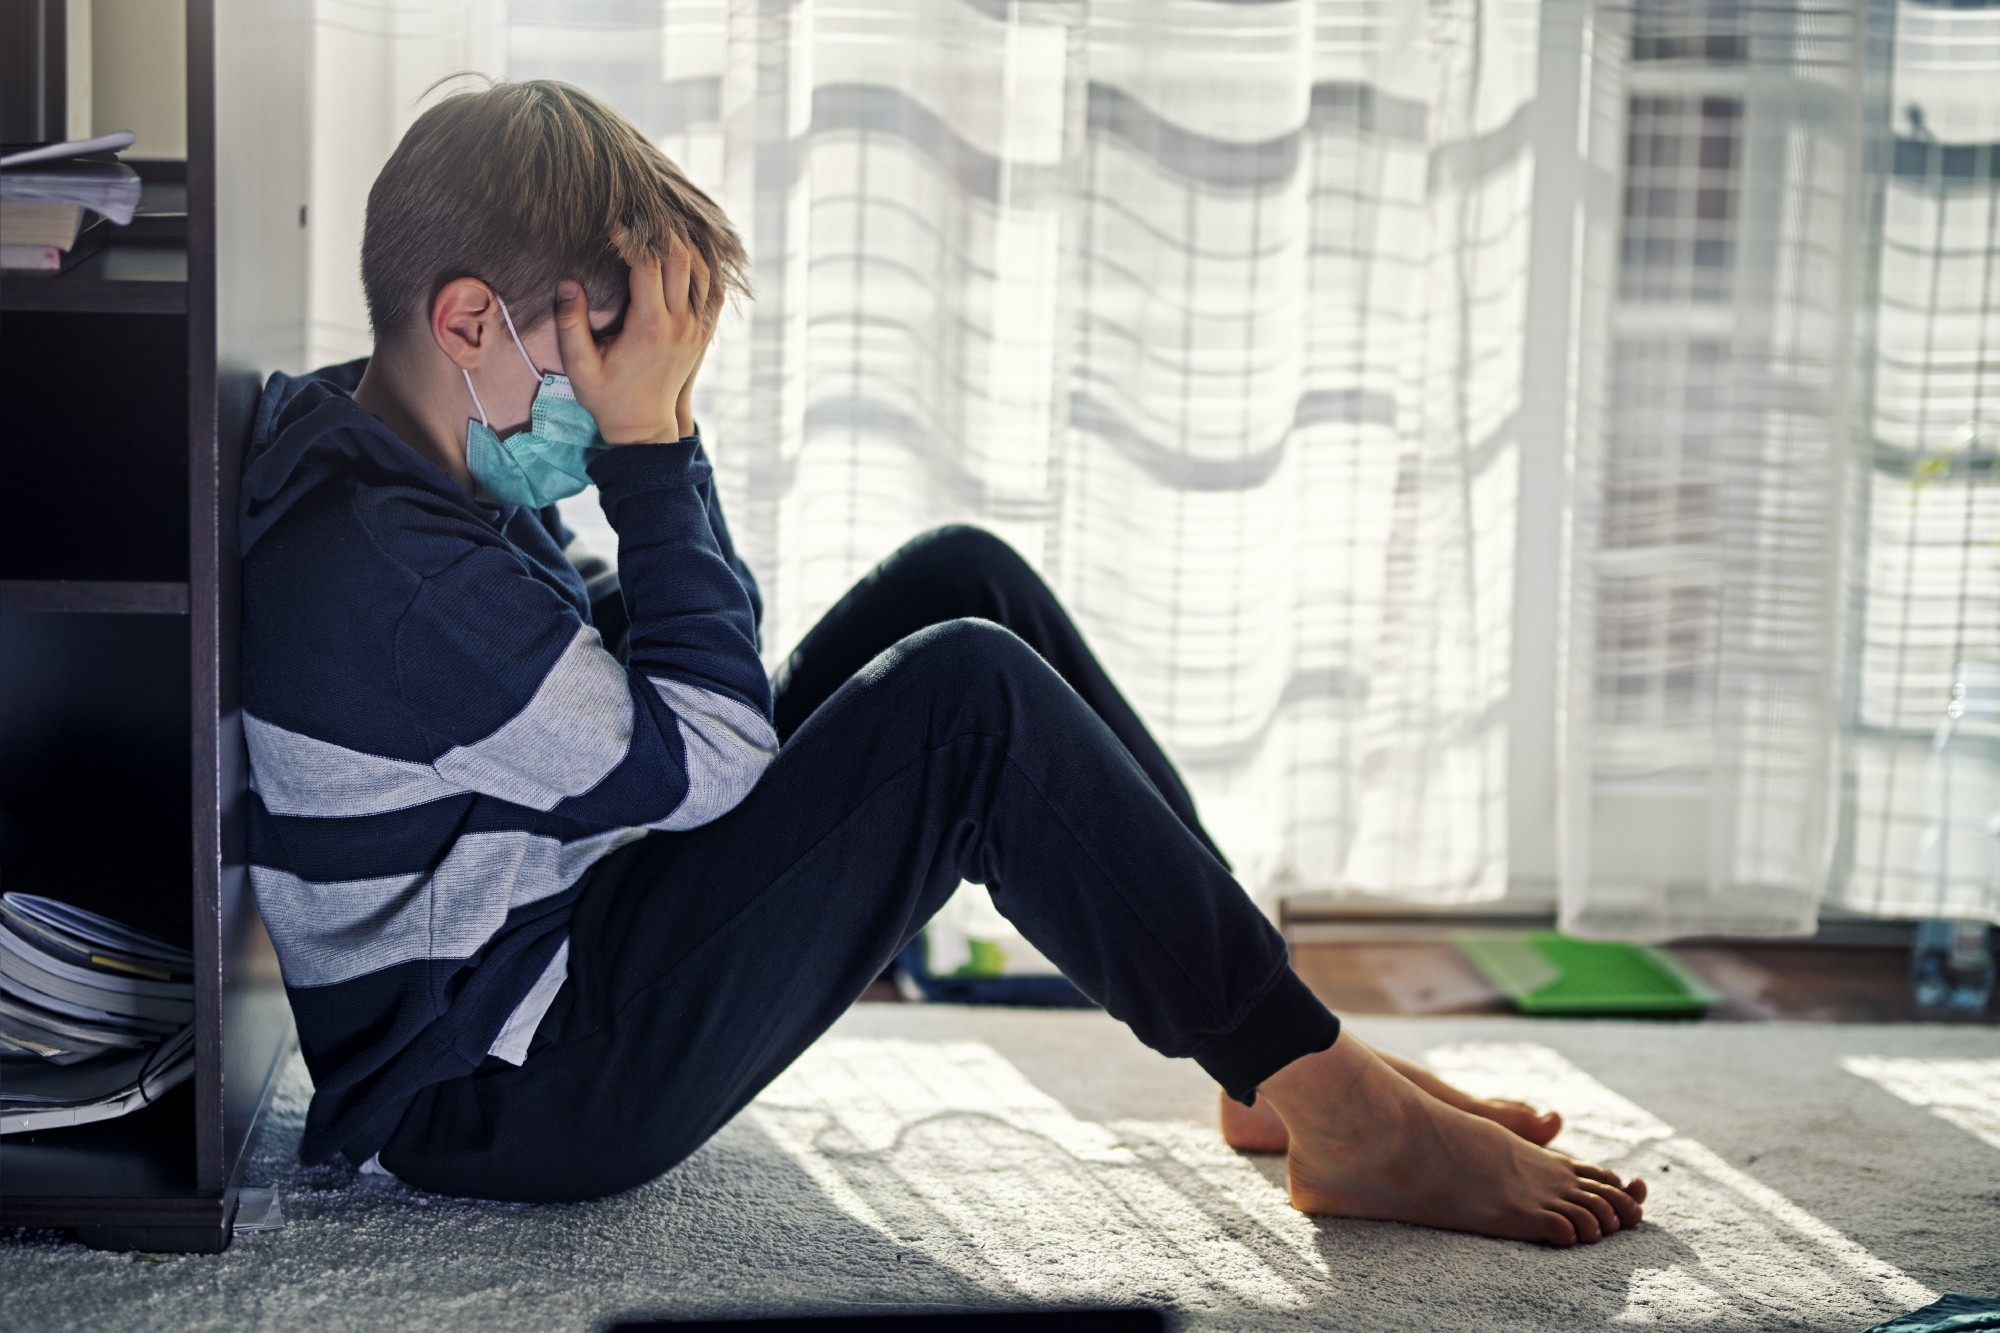 Child sits on floor near a window with head in hands. Photo by Imgorthand/Getty Images